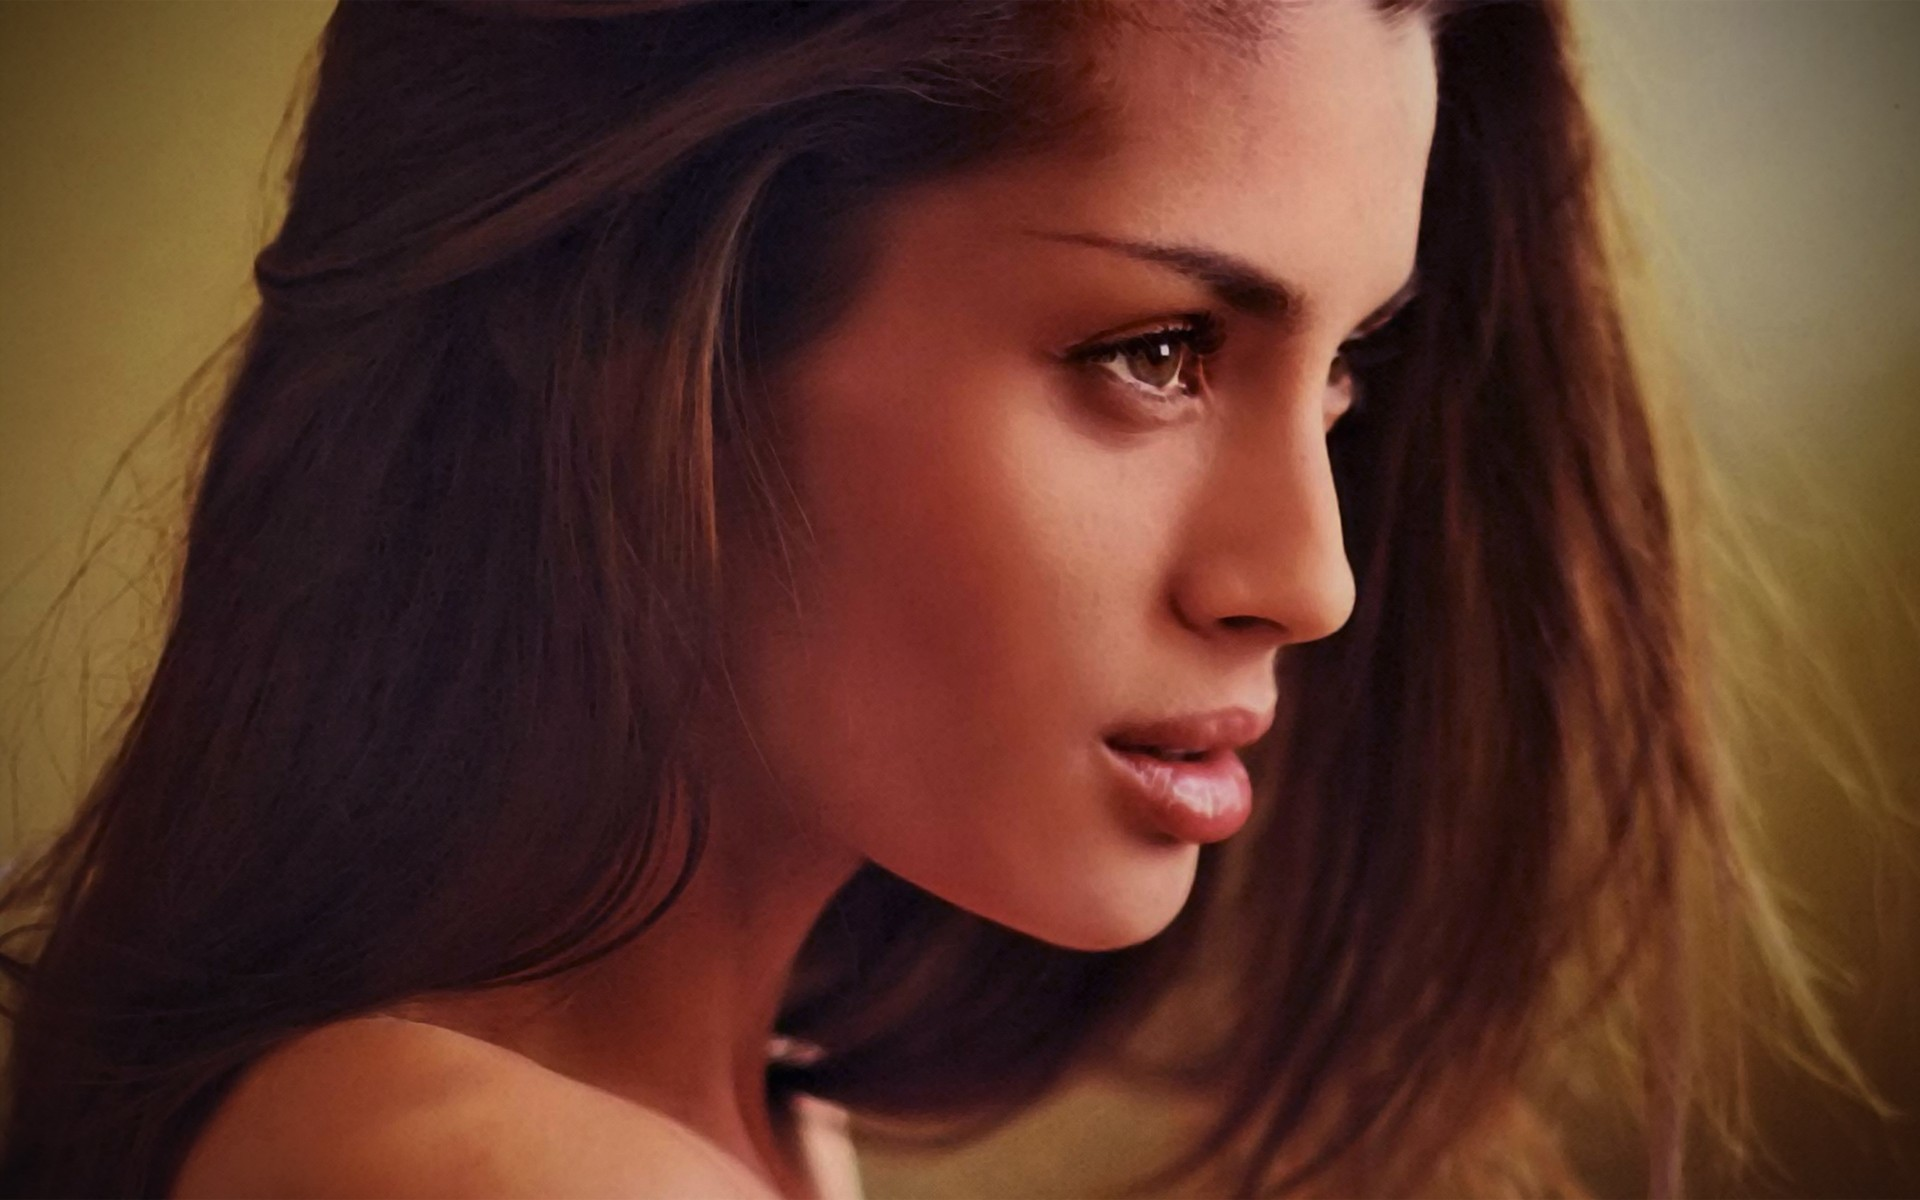 faces side view brunettes HD Wallpaper